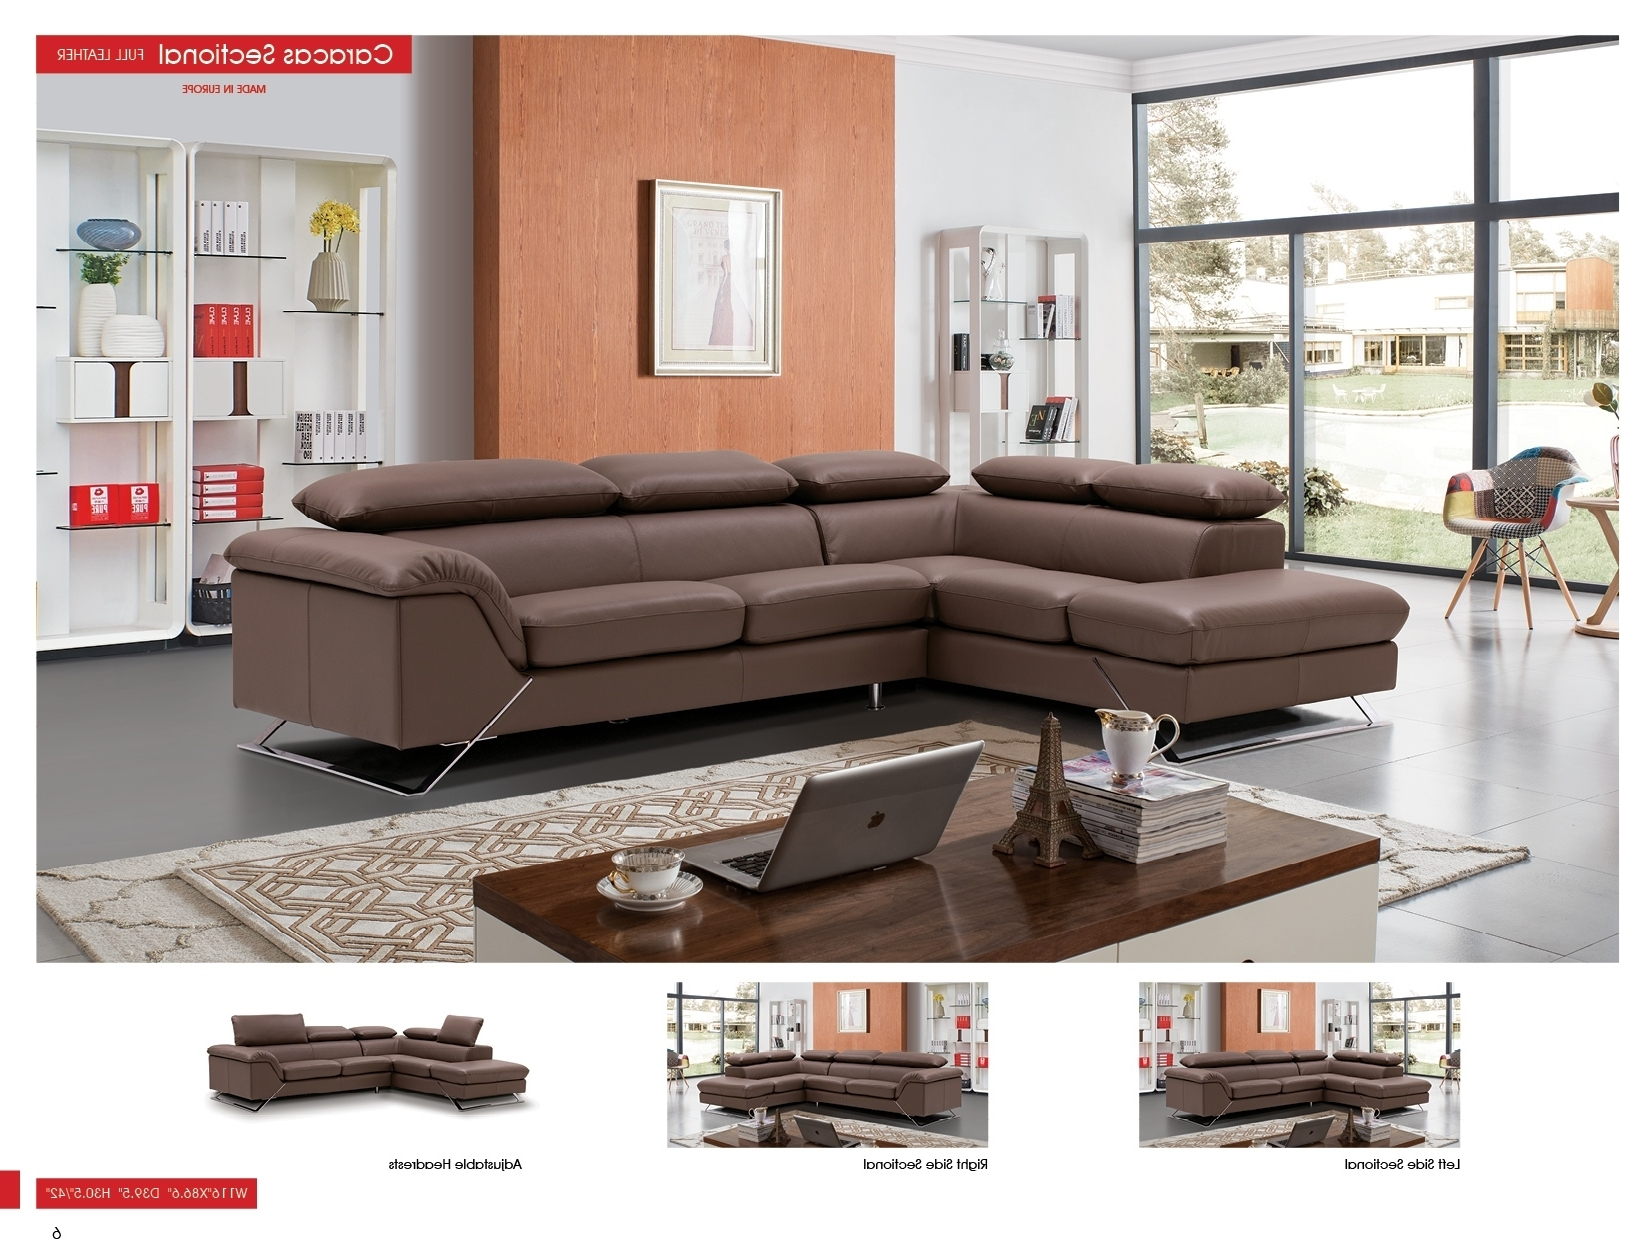 Caracas Sectional Full Leather, Sectionals, Living Room Furniture Within Most Current Sectional Sofas From Europe (View 4 of 20)